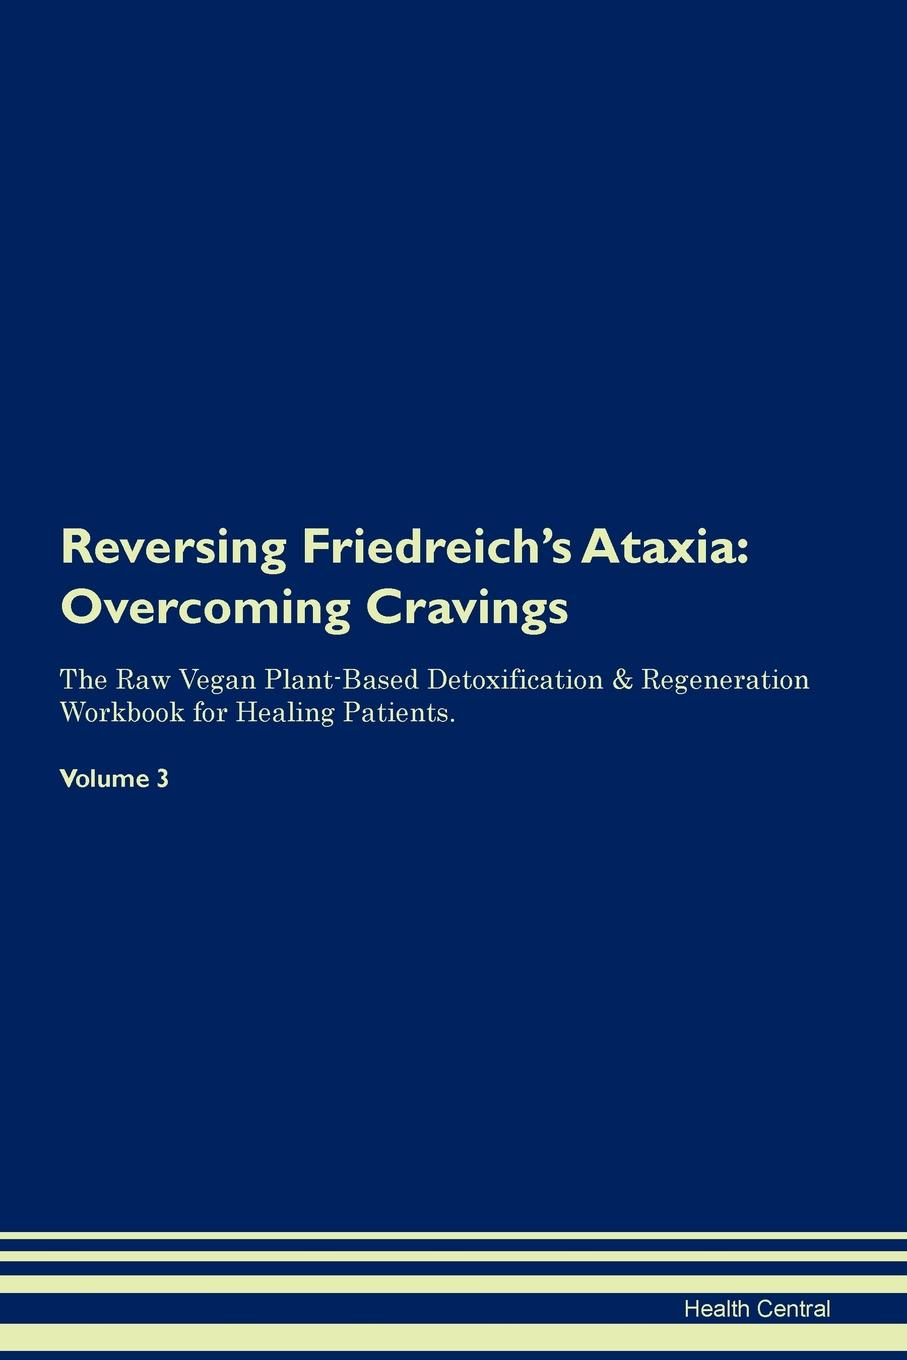 Фото - Health Central Reversing Friedreich's Ataxia. Overcoming Cravings The Raw Vegan Plant-Based Detoxification & Regeneration Workbook for Healing Patients. Volume 3 health central reversing spinocerebellar ataxia overcoming cravings the raw vegan plant based detoxification